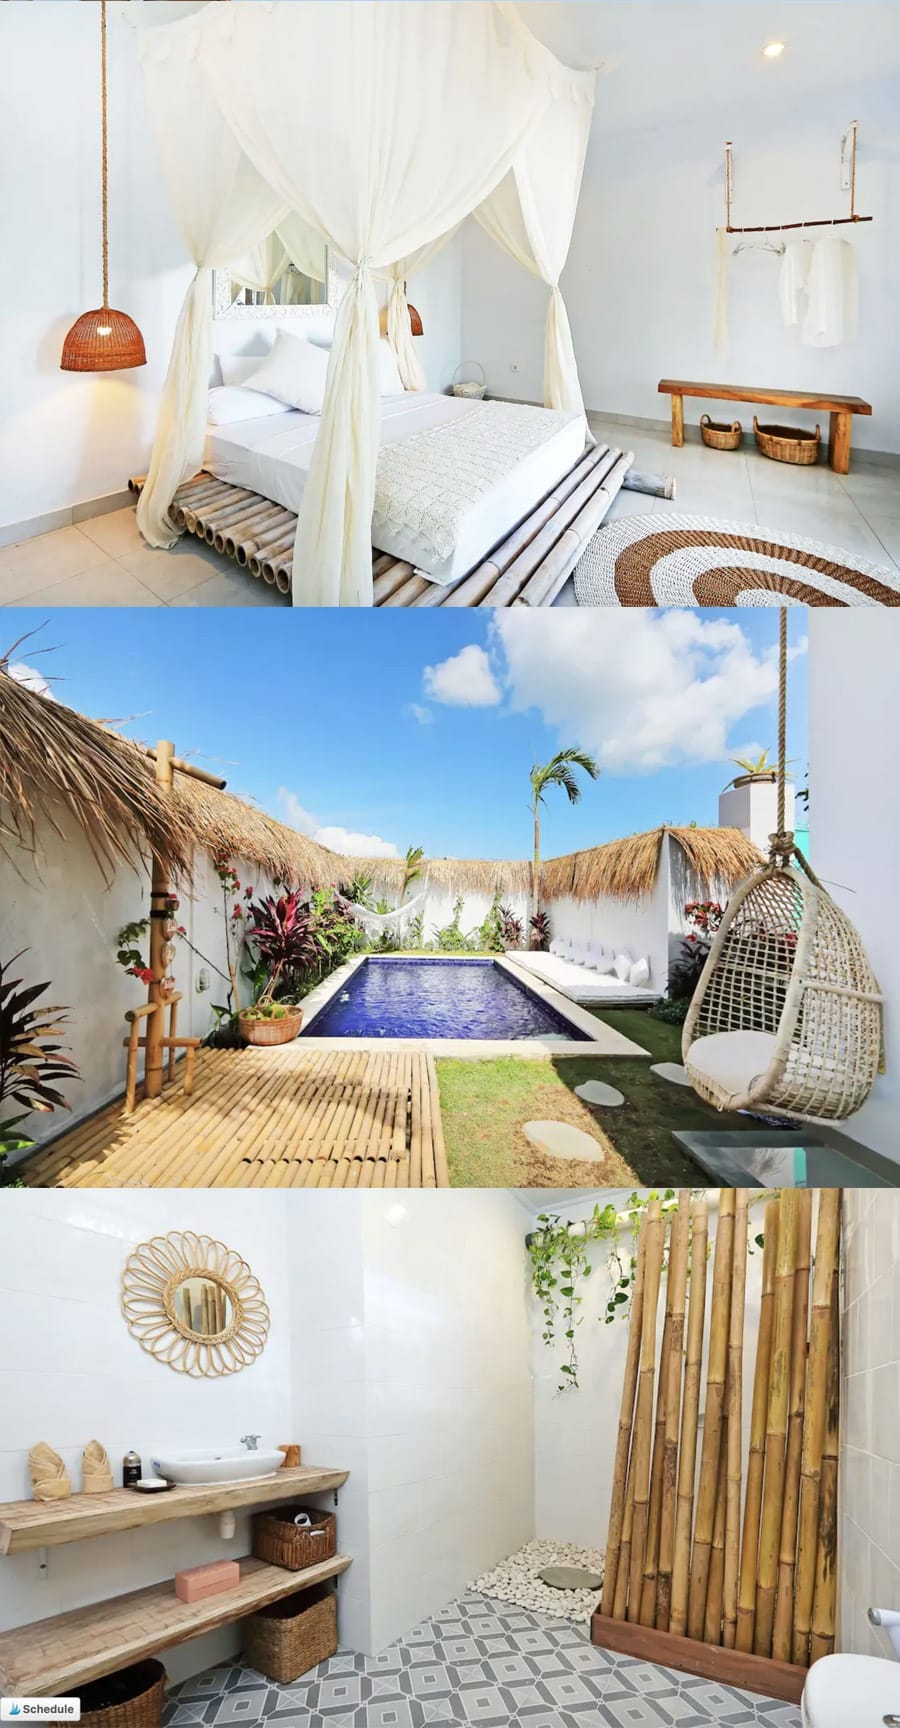 The Most Beautiful Airbnbs in Canggu, Bali For Every Budget